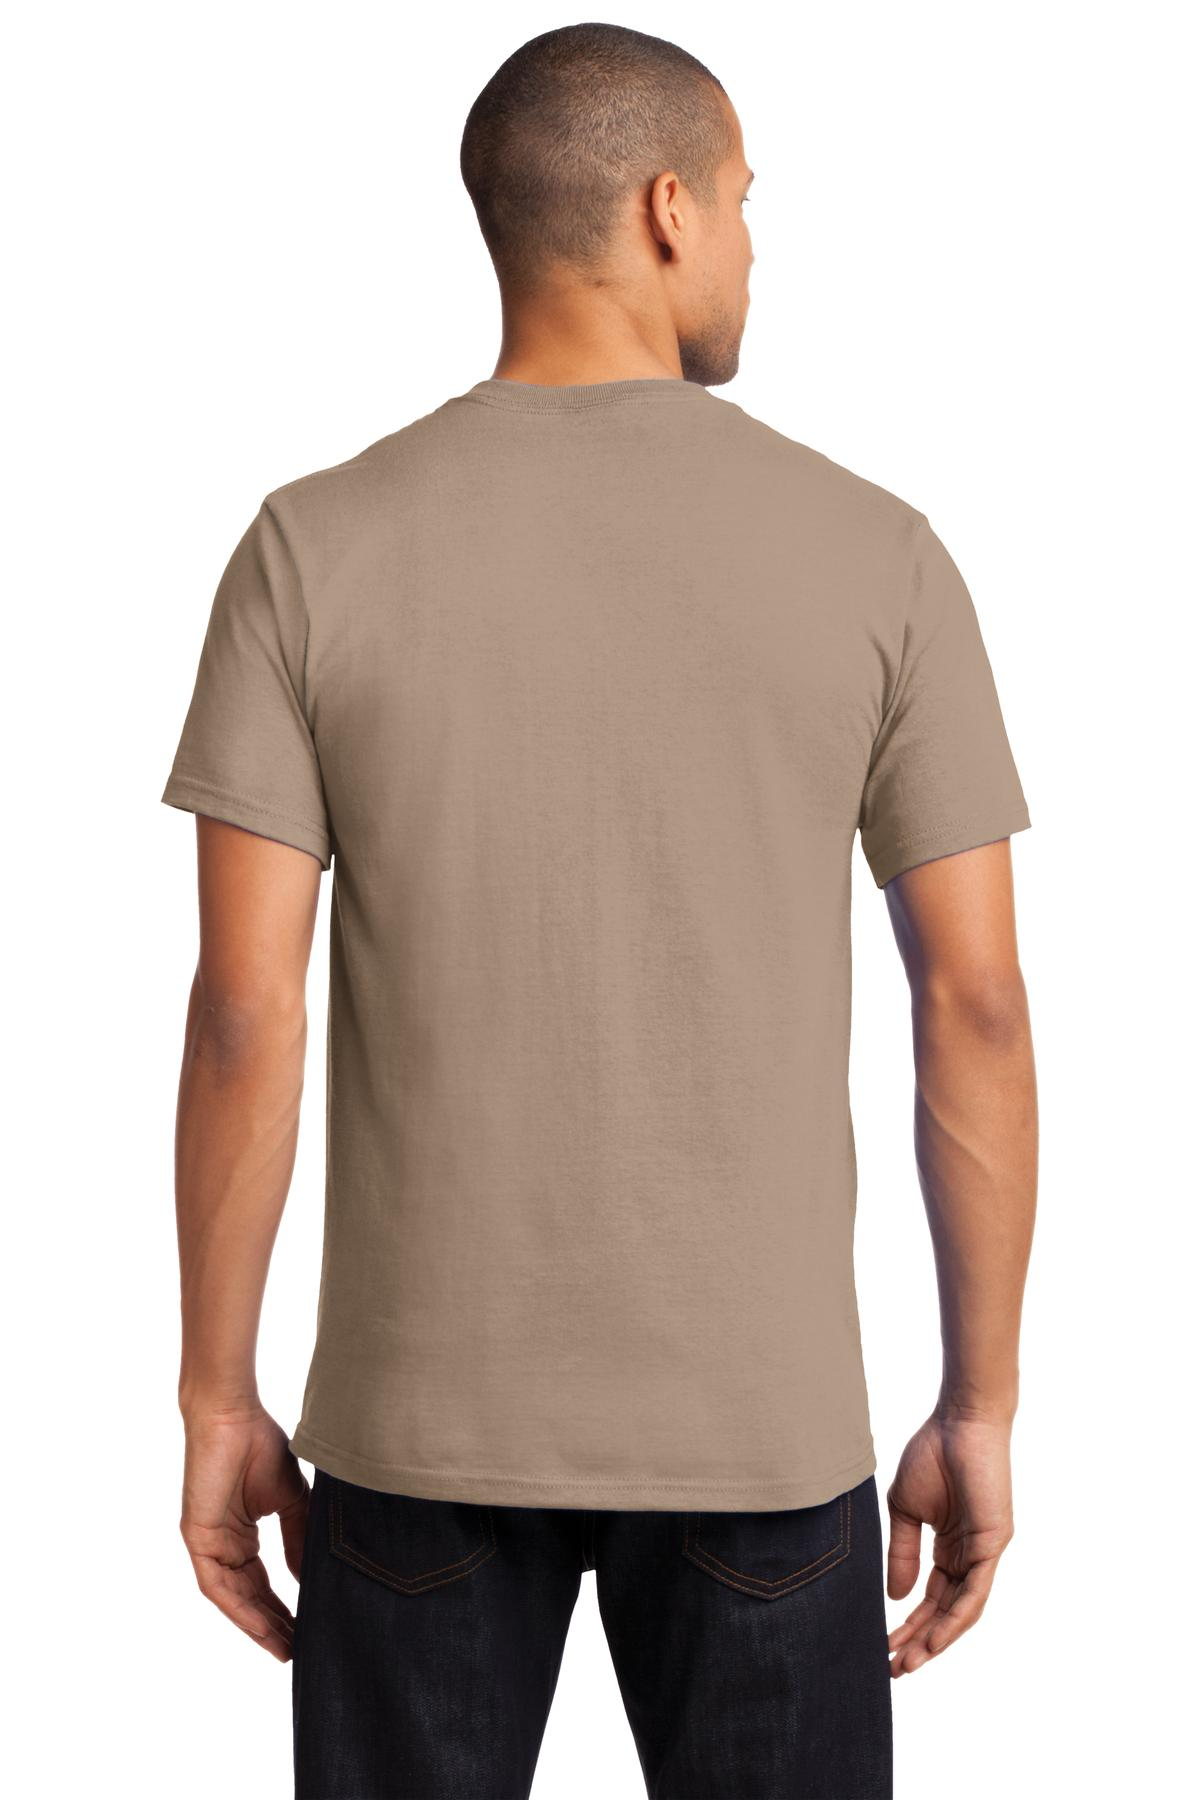 Port-amp-Company-Tall-Essential-TShirt-with-Pocket-PC61PT-Size-LT-4XLT thumbnail 34